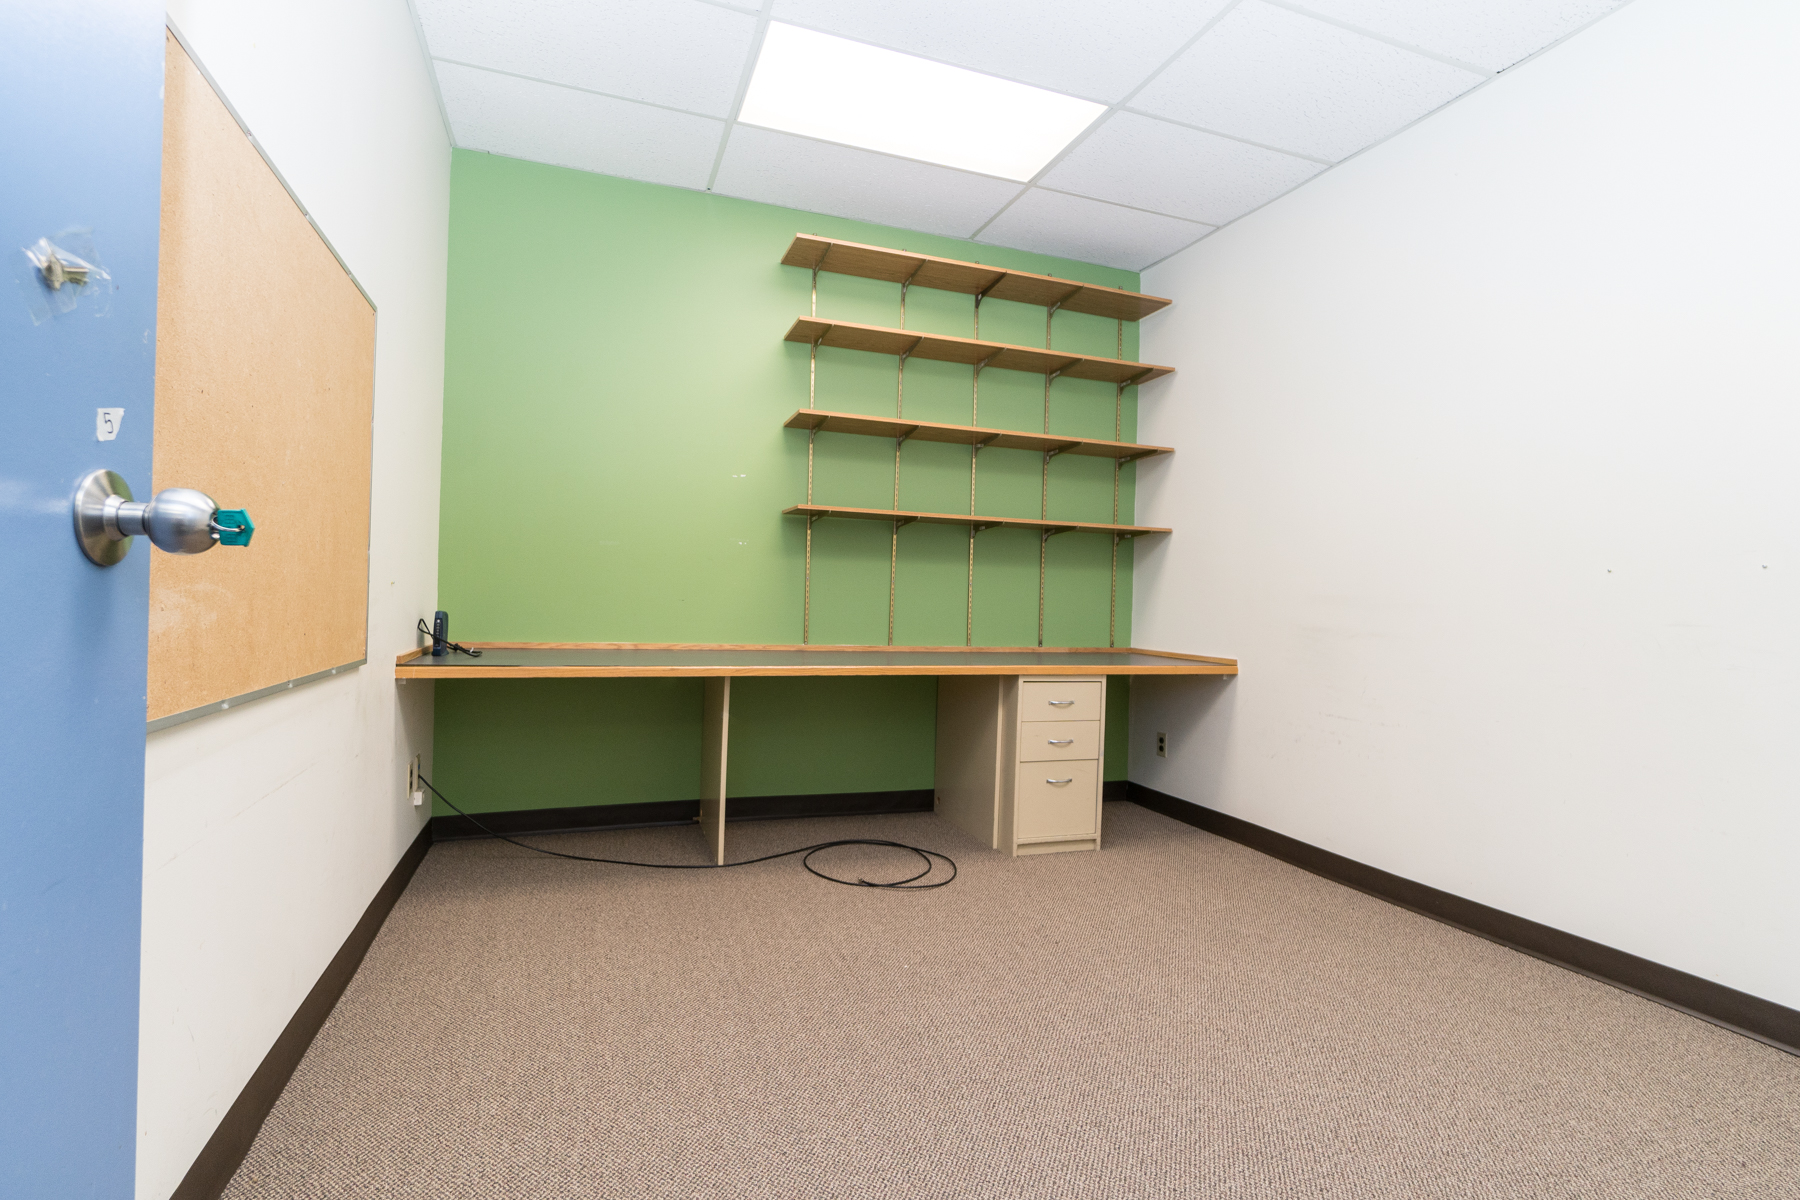 Even smaller offices have built-in shelving and desks,